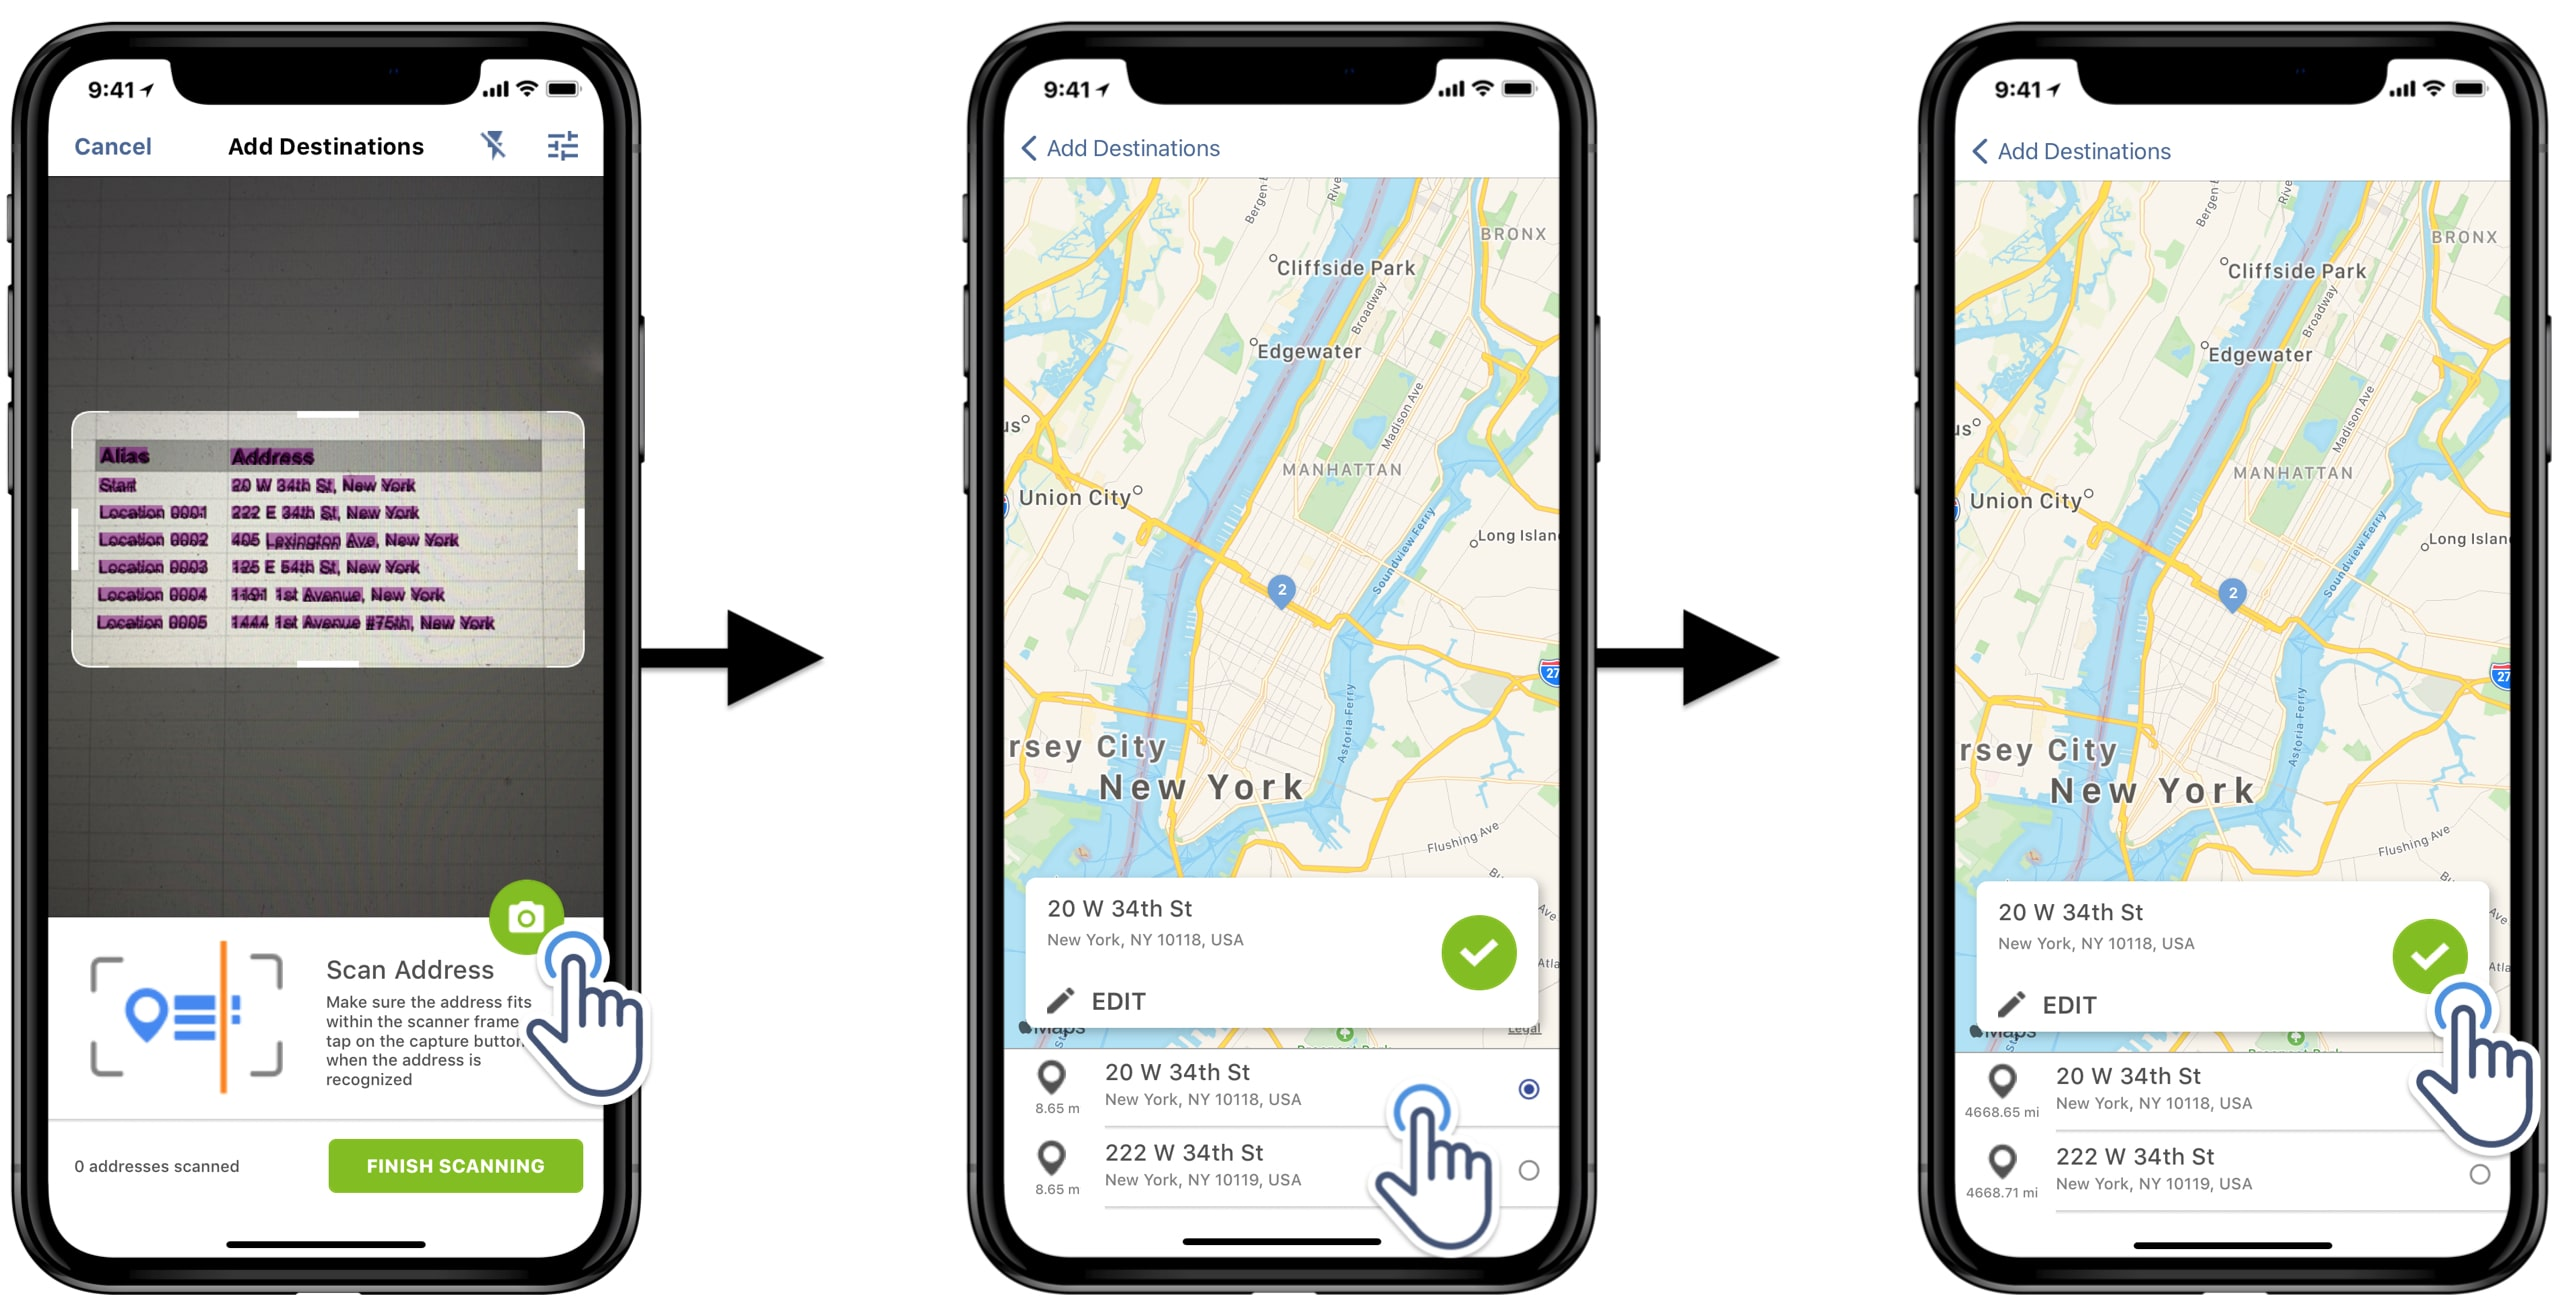 Scan multiple addresses and select one of the geocoded options to add to the route as a stop.